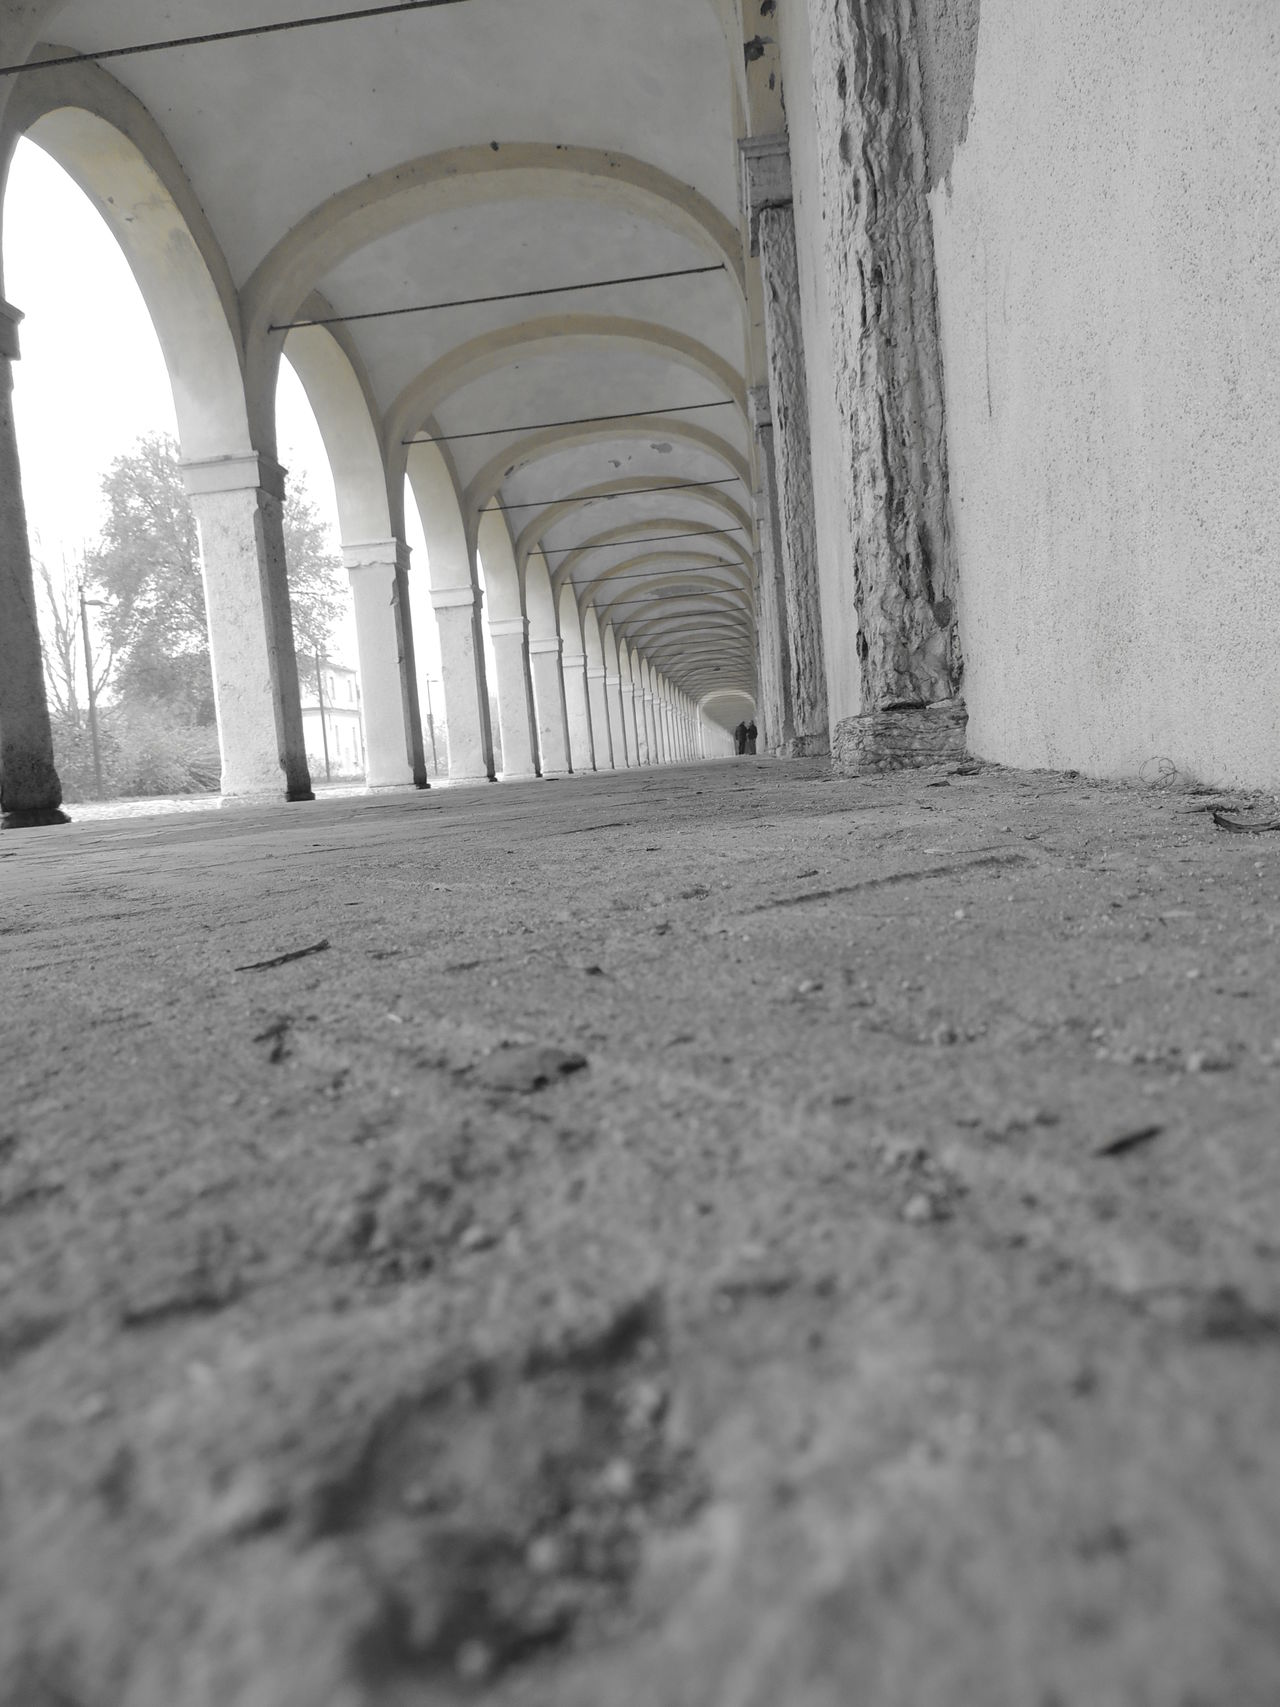 Arcade Arch Architectural Column Architectural Detail Architecture Architecture Architecture_collection Architecturelovers Arichitektur Built Structure Colonnade Column Comacchio Corridor Day Diminishing Perspective History Outdoors Prospective Prospective Architecture_bw Streetphotography_bw Prospective Photography Prospectives Surface Level The Way Forward Wall - Building Feature